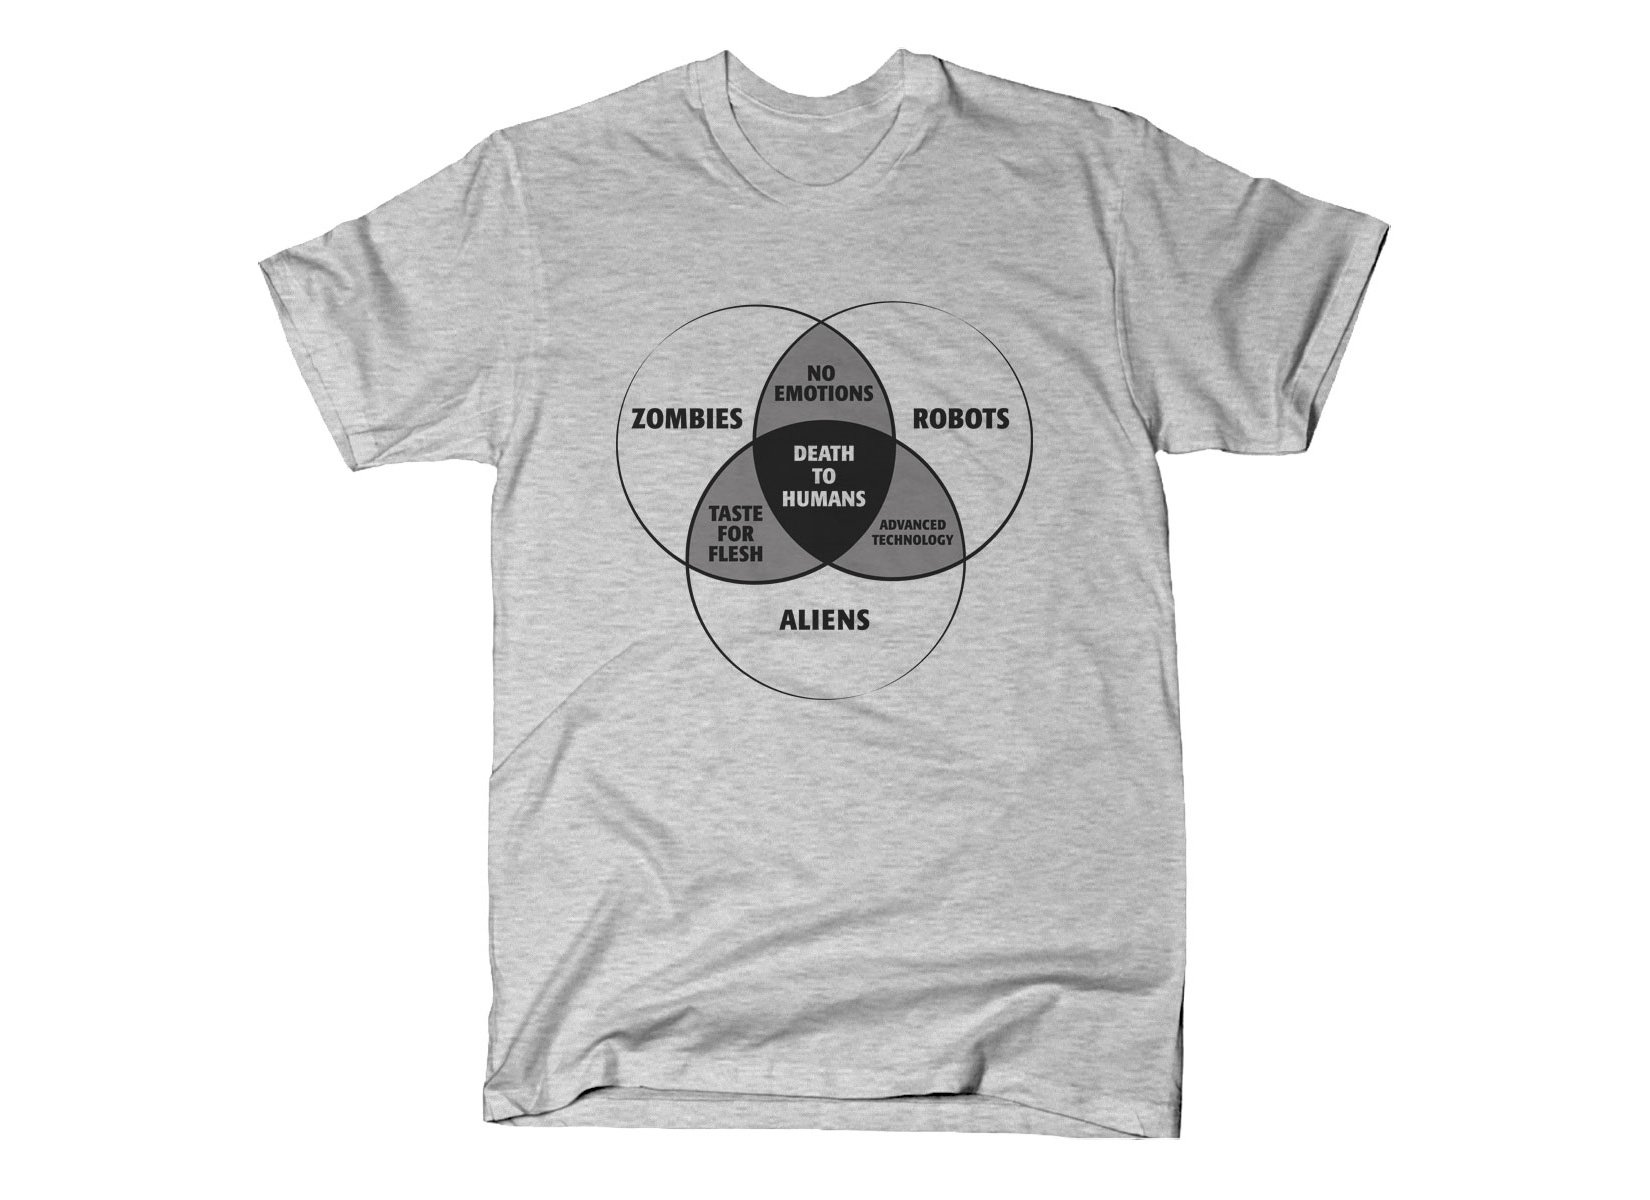 snorg_zombieveendiagram_1 zombies, robots, and aliens venn diagram t shirt snorgtees shirt diagram at soozxer.org